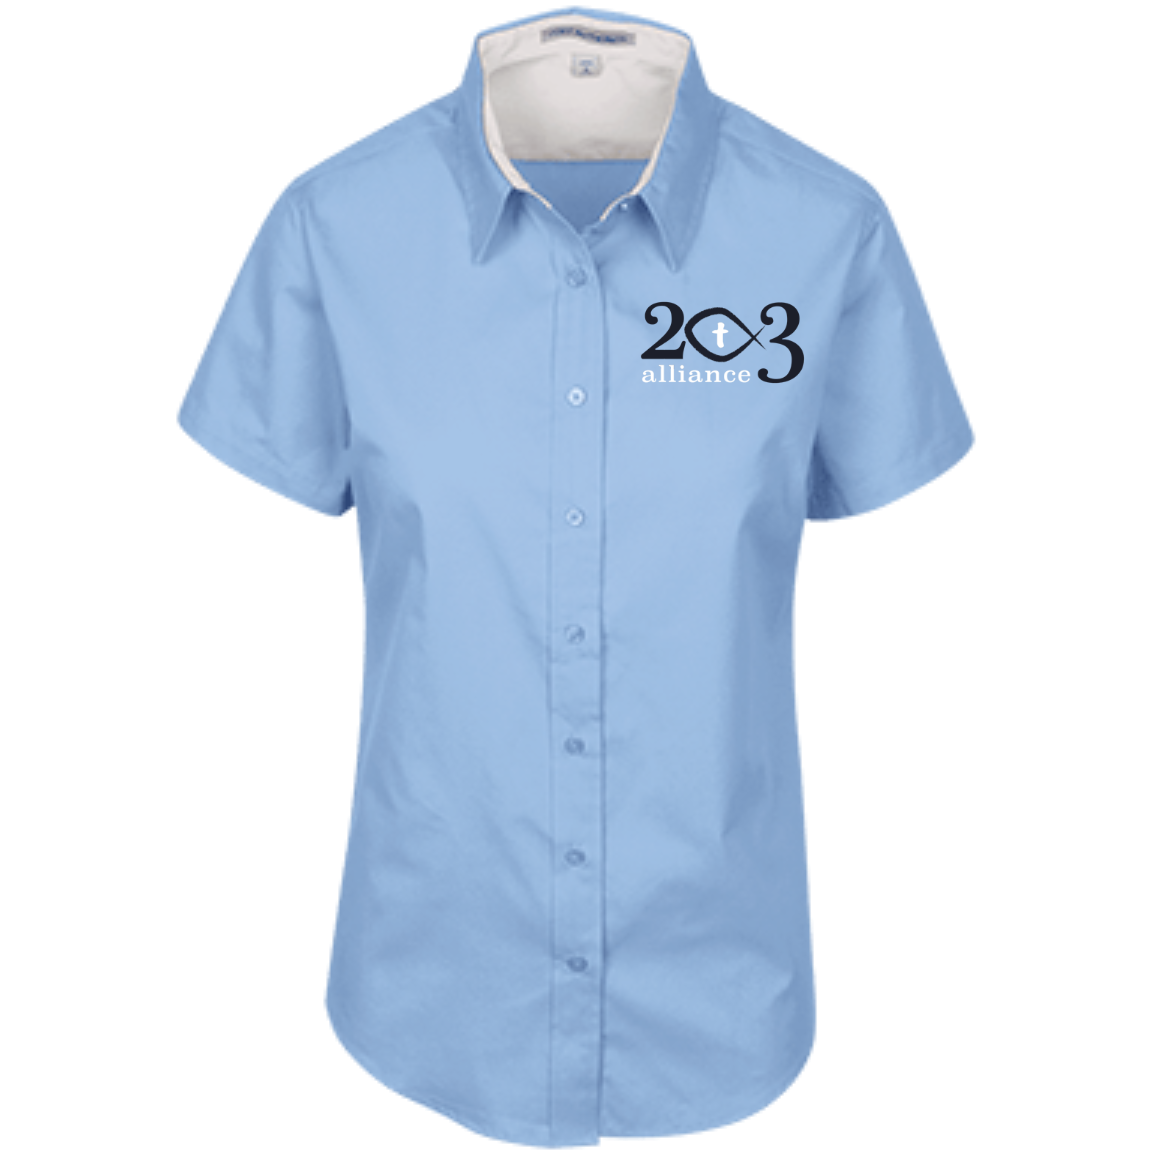 203 Alliance Ladies' Short Sleeve Easy Care Shirt